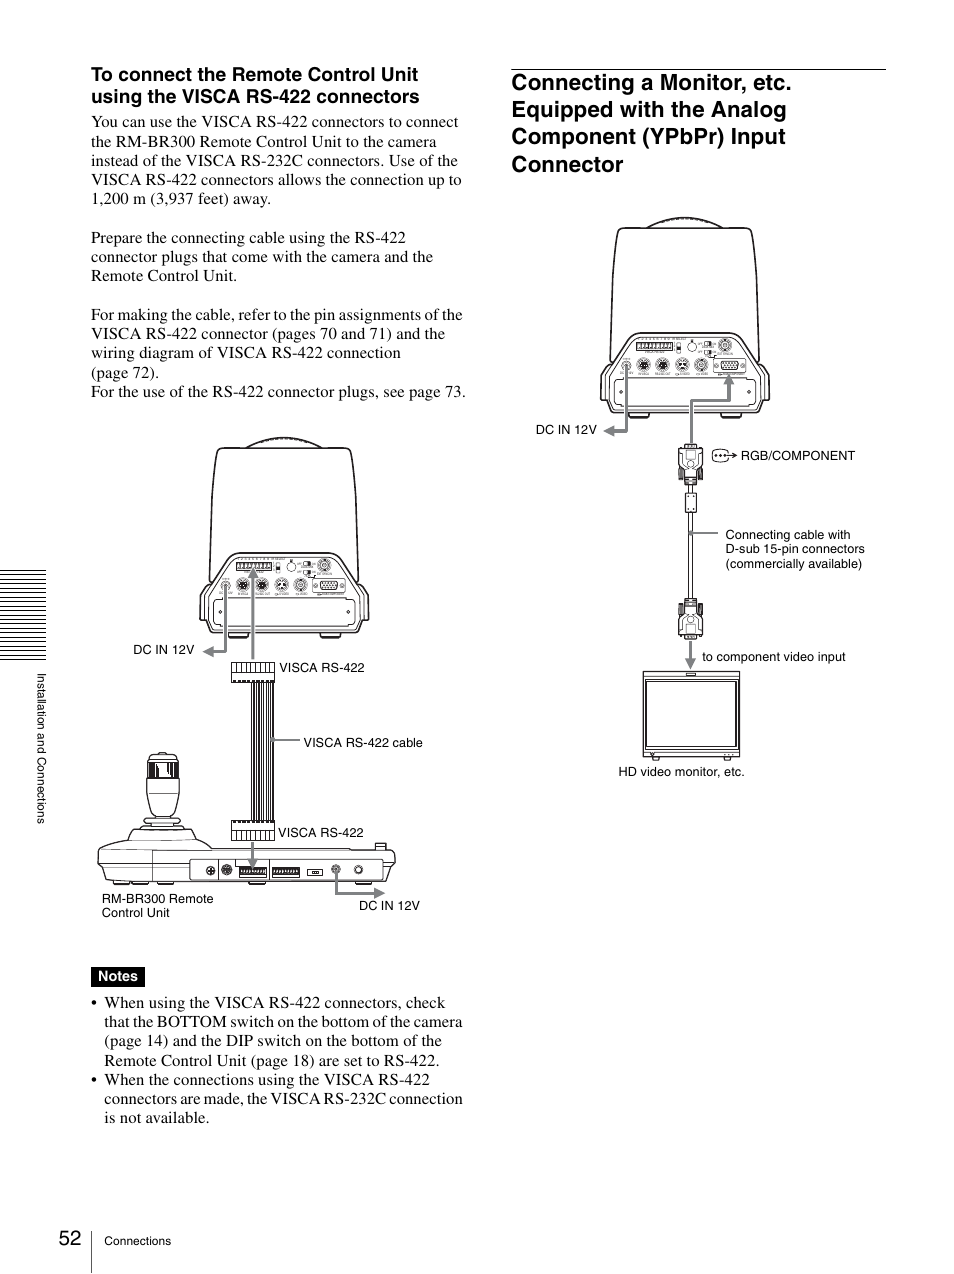 Connecting A Monitor Etc Equipped With The Analog Component Rs 422 Wiring Diagram Ypbpr Input Connector Sony Brc Z330 User Manual Page 52 73